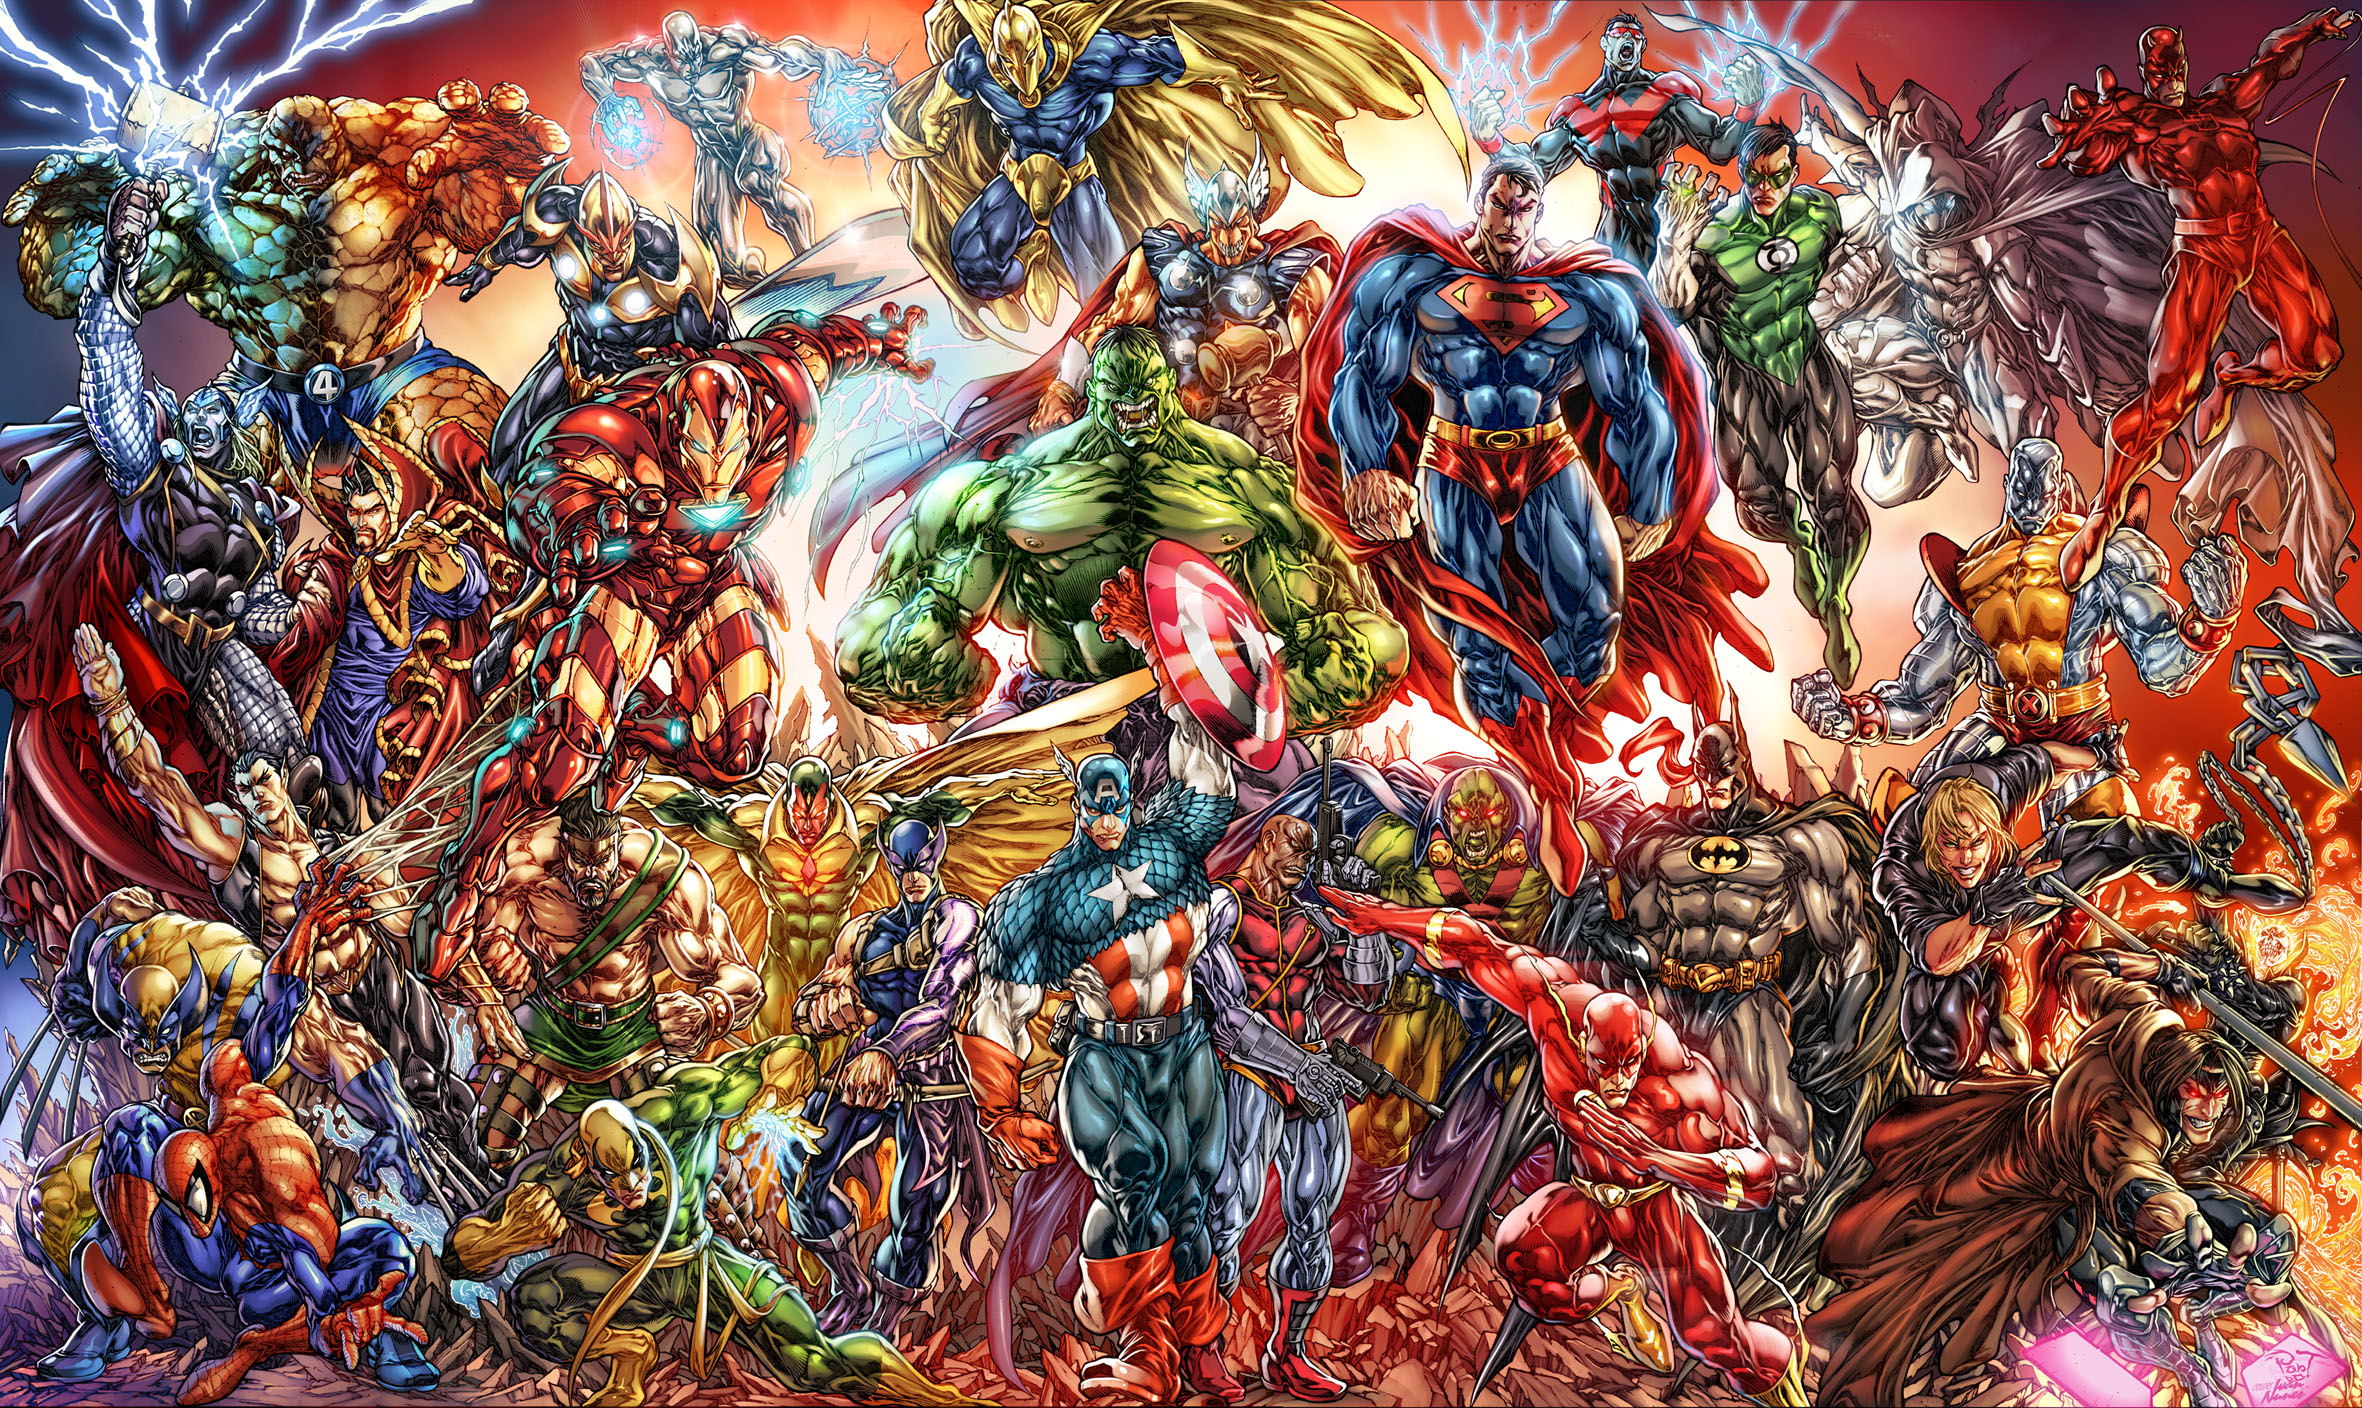 152 Thing Marvel Comics Hd Wallpapers Background Images